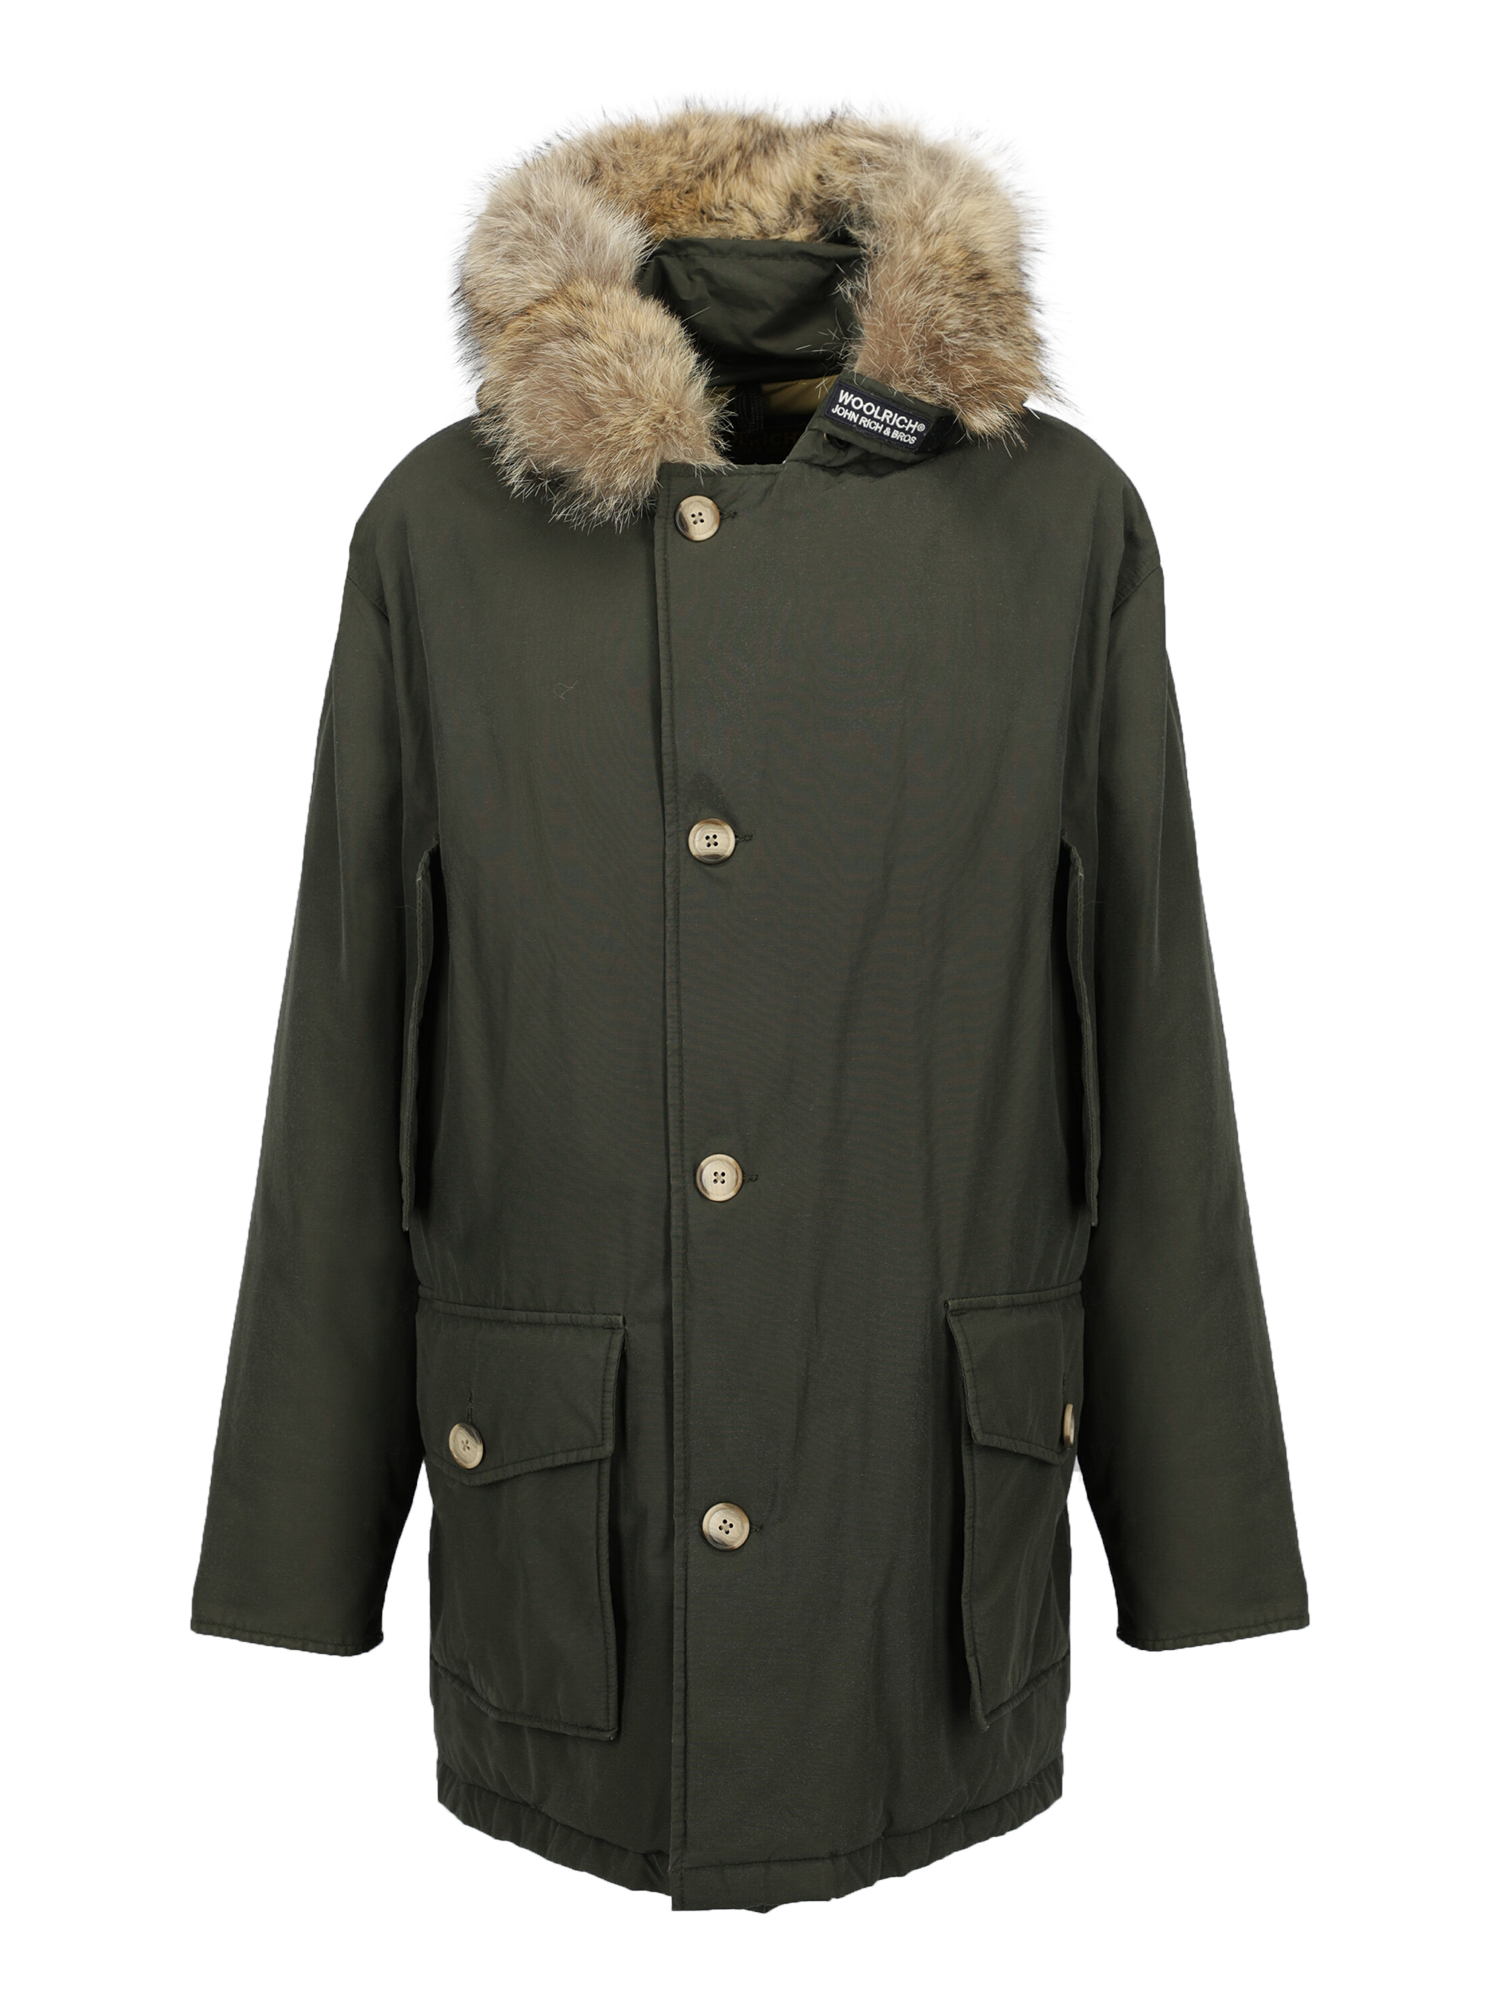 Pre-owned Woolrich Clothing In Green